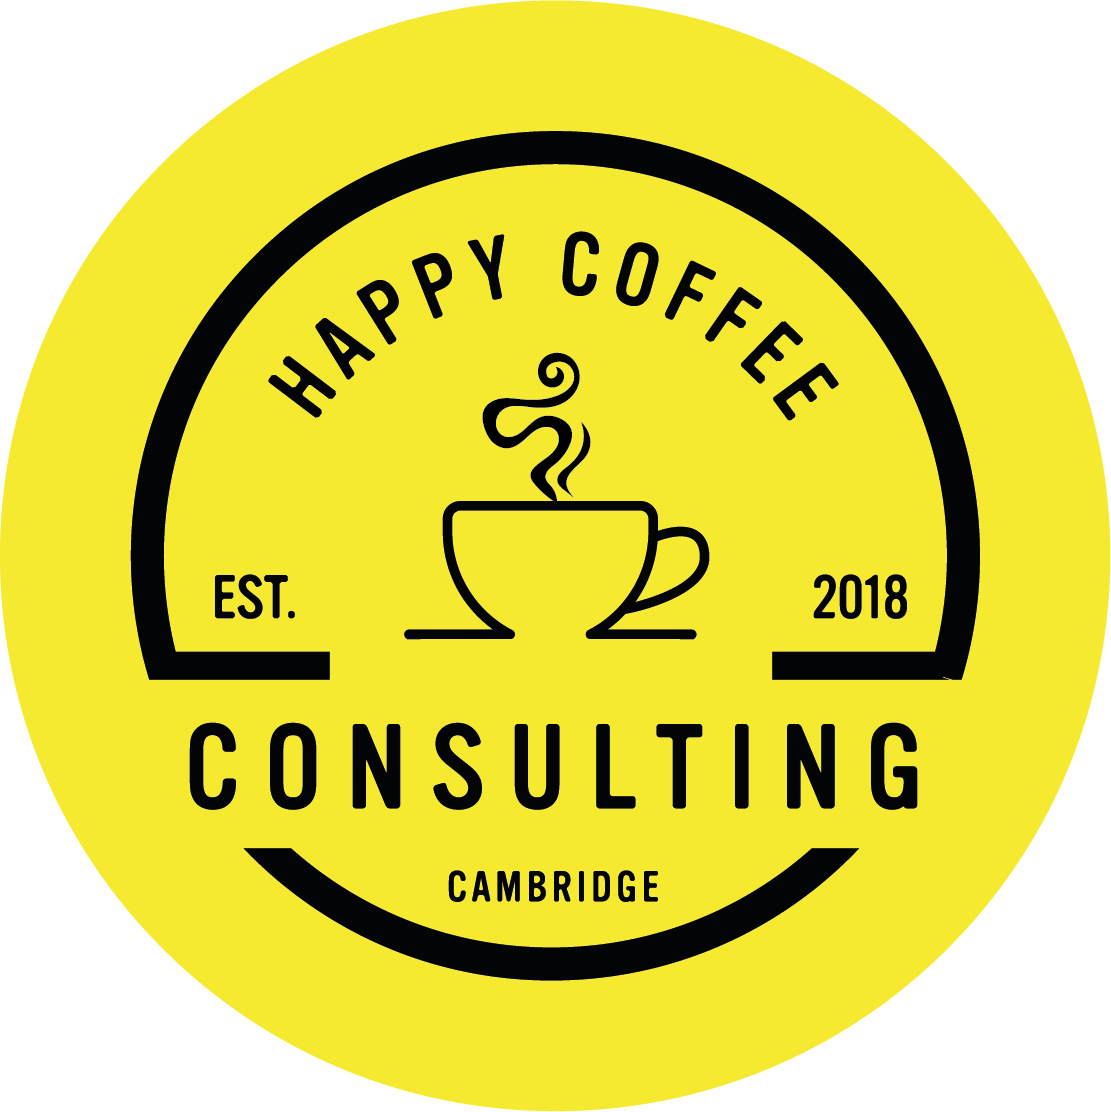 Happy Coffee consulting